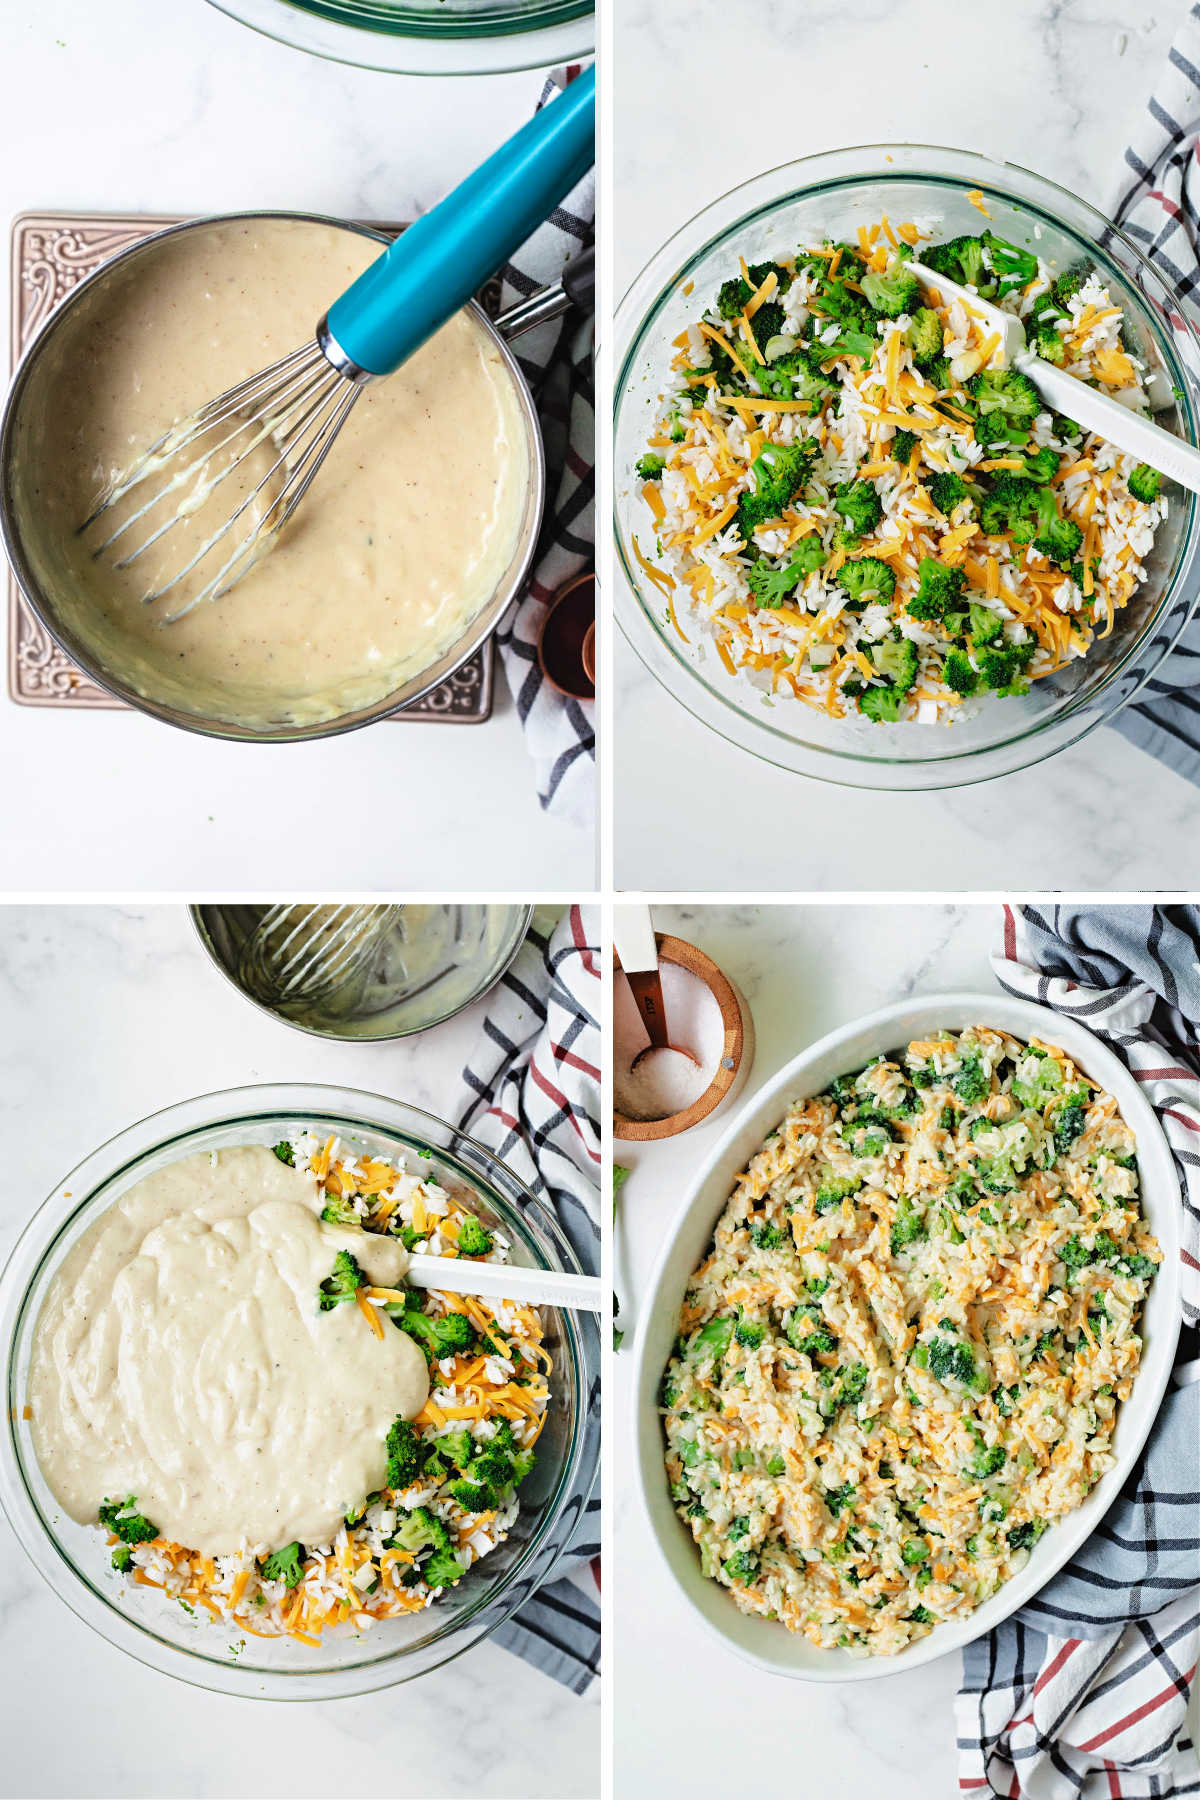 process steps for making a broccoli rice casserole: 1) make the cream sauce 2) mix together broccoli, rice, cheese 3) mix all ingredients 4) place in casserole dish